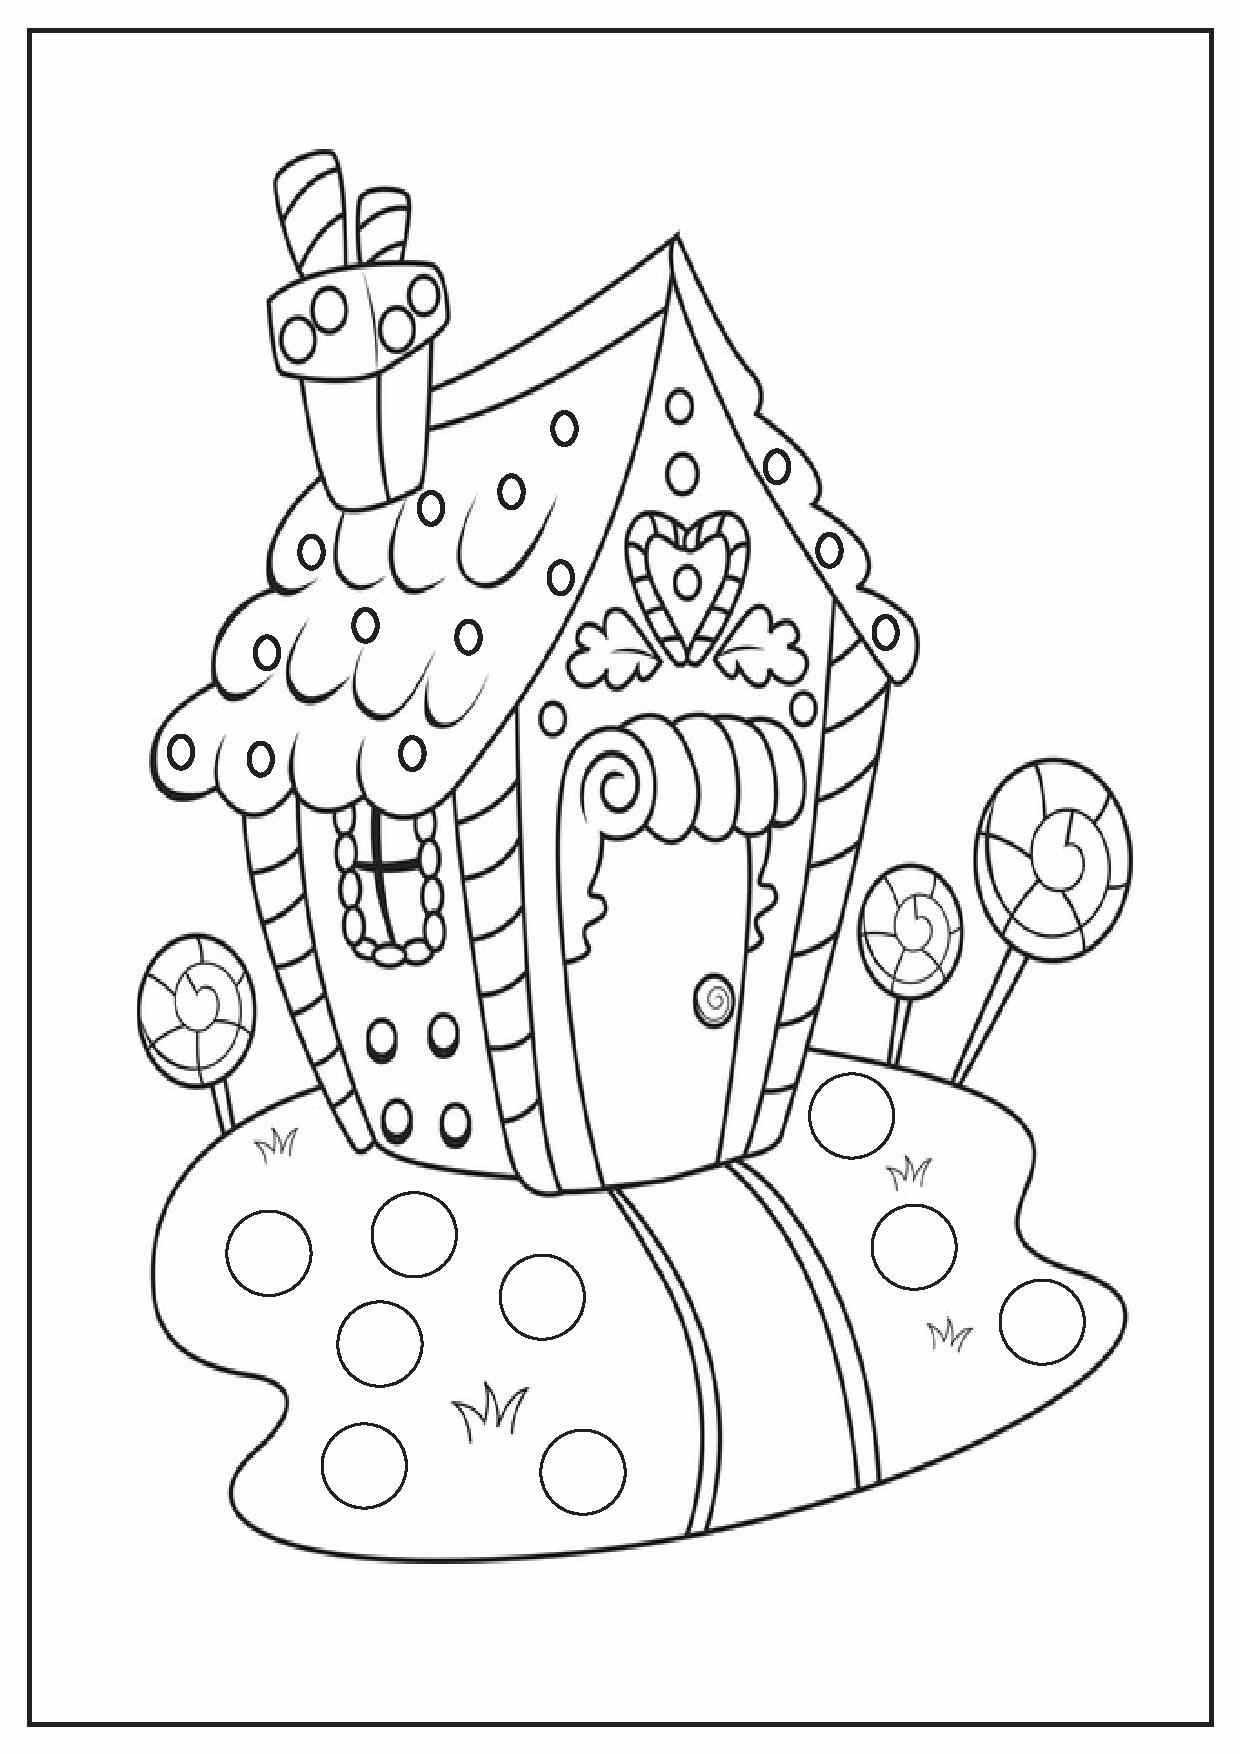 Christmas Coloring Pages For Elementary Students With Best Luxury